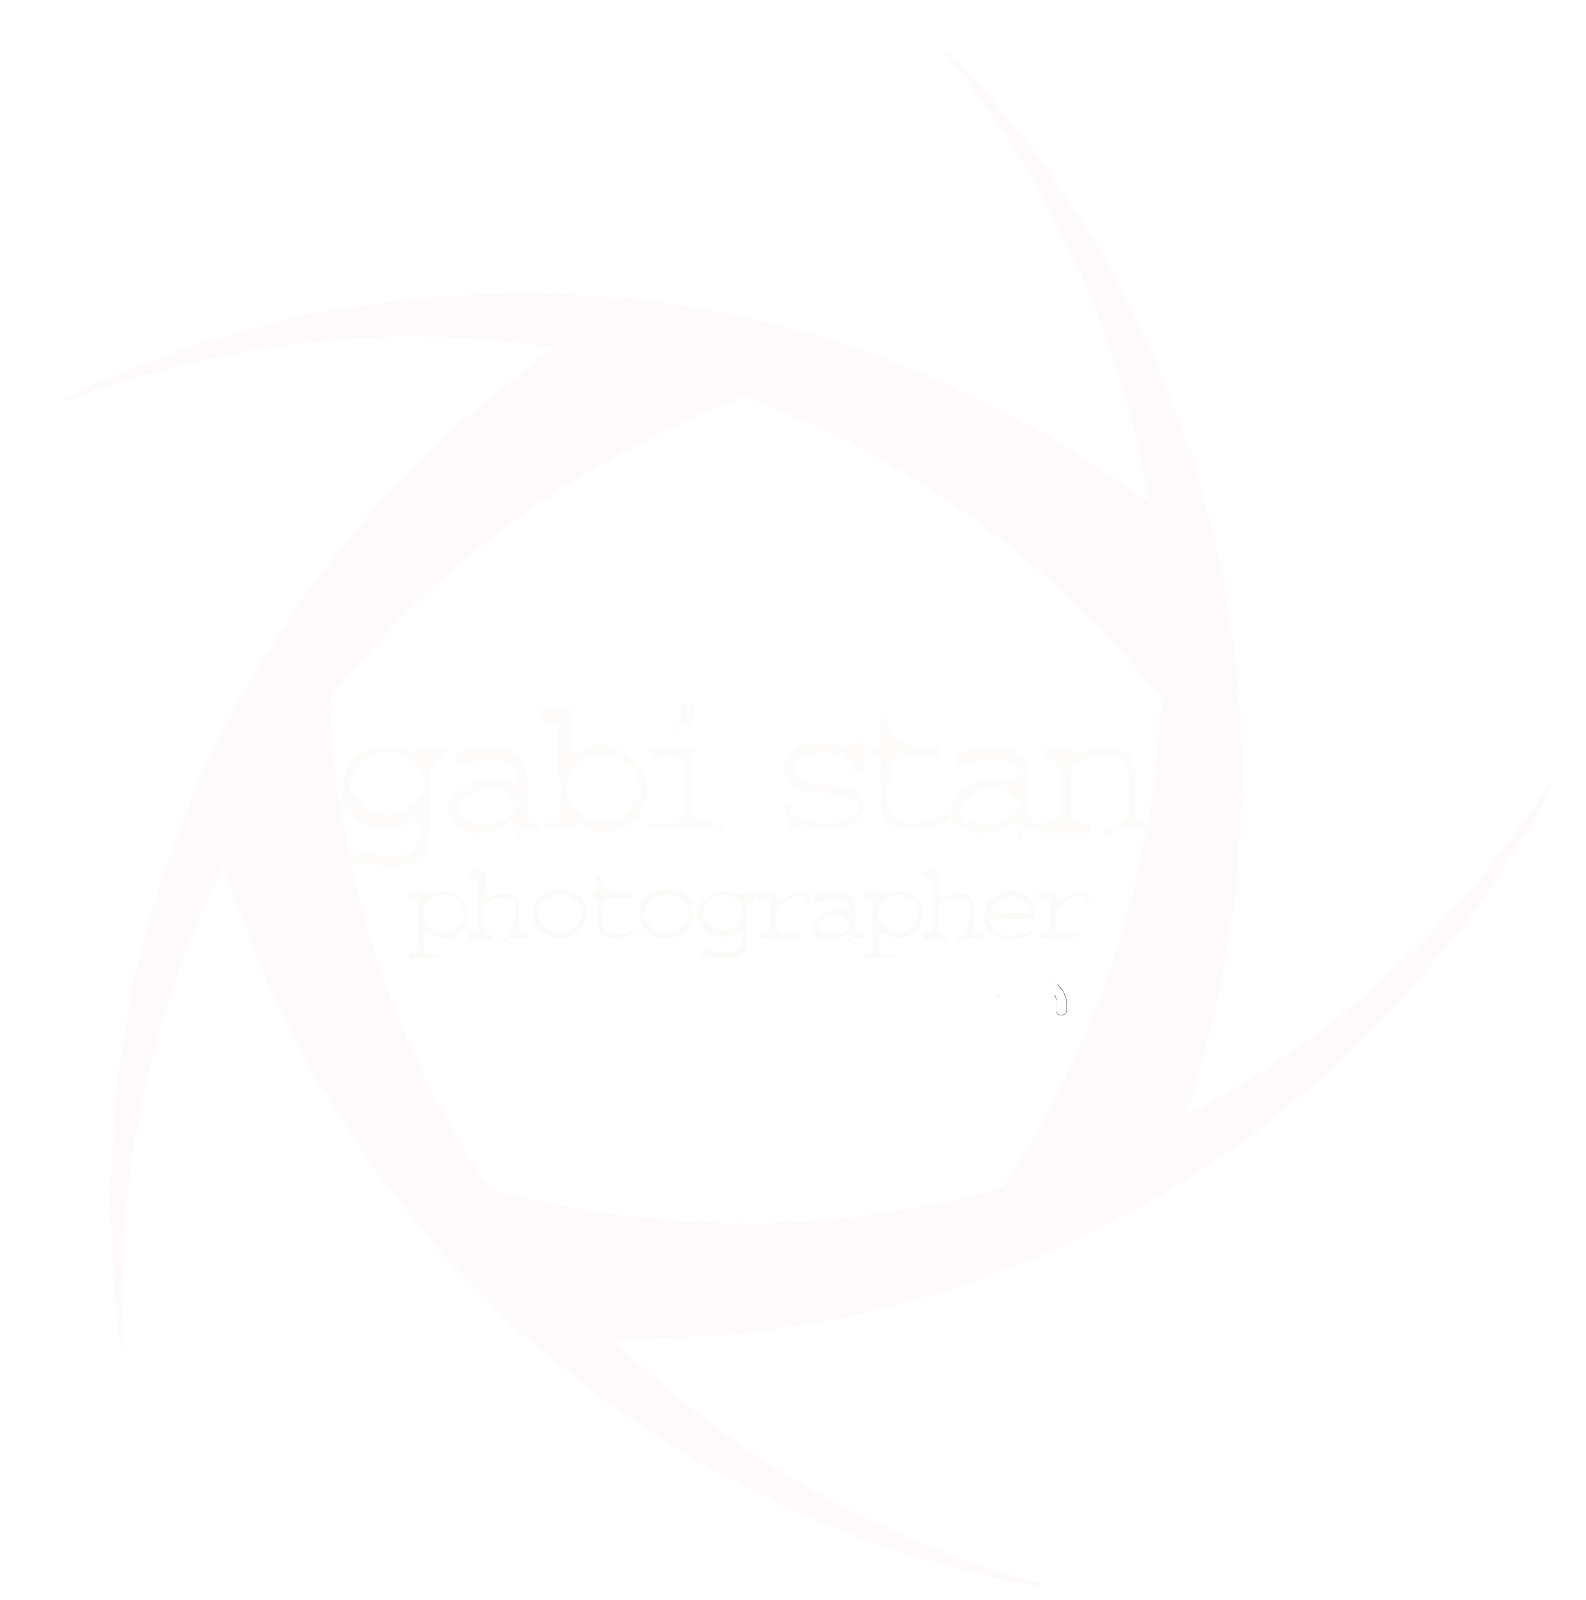 gabi stan photographer